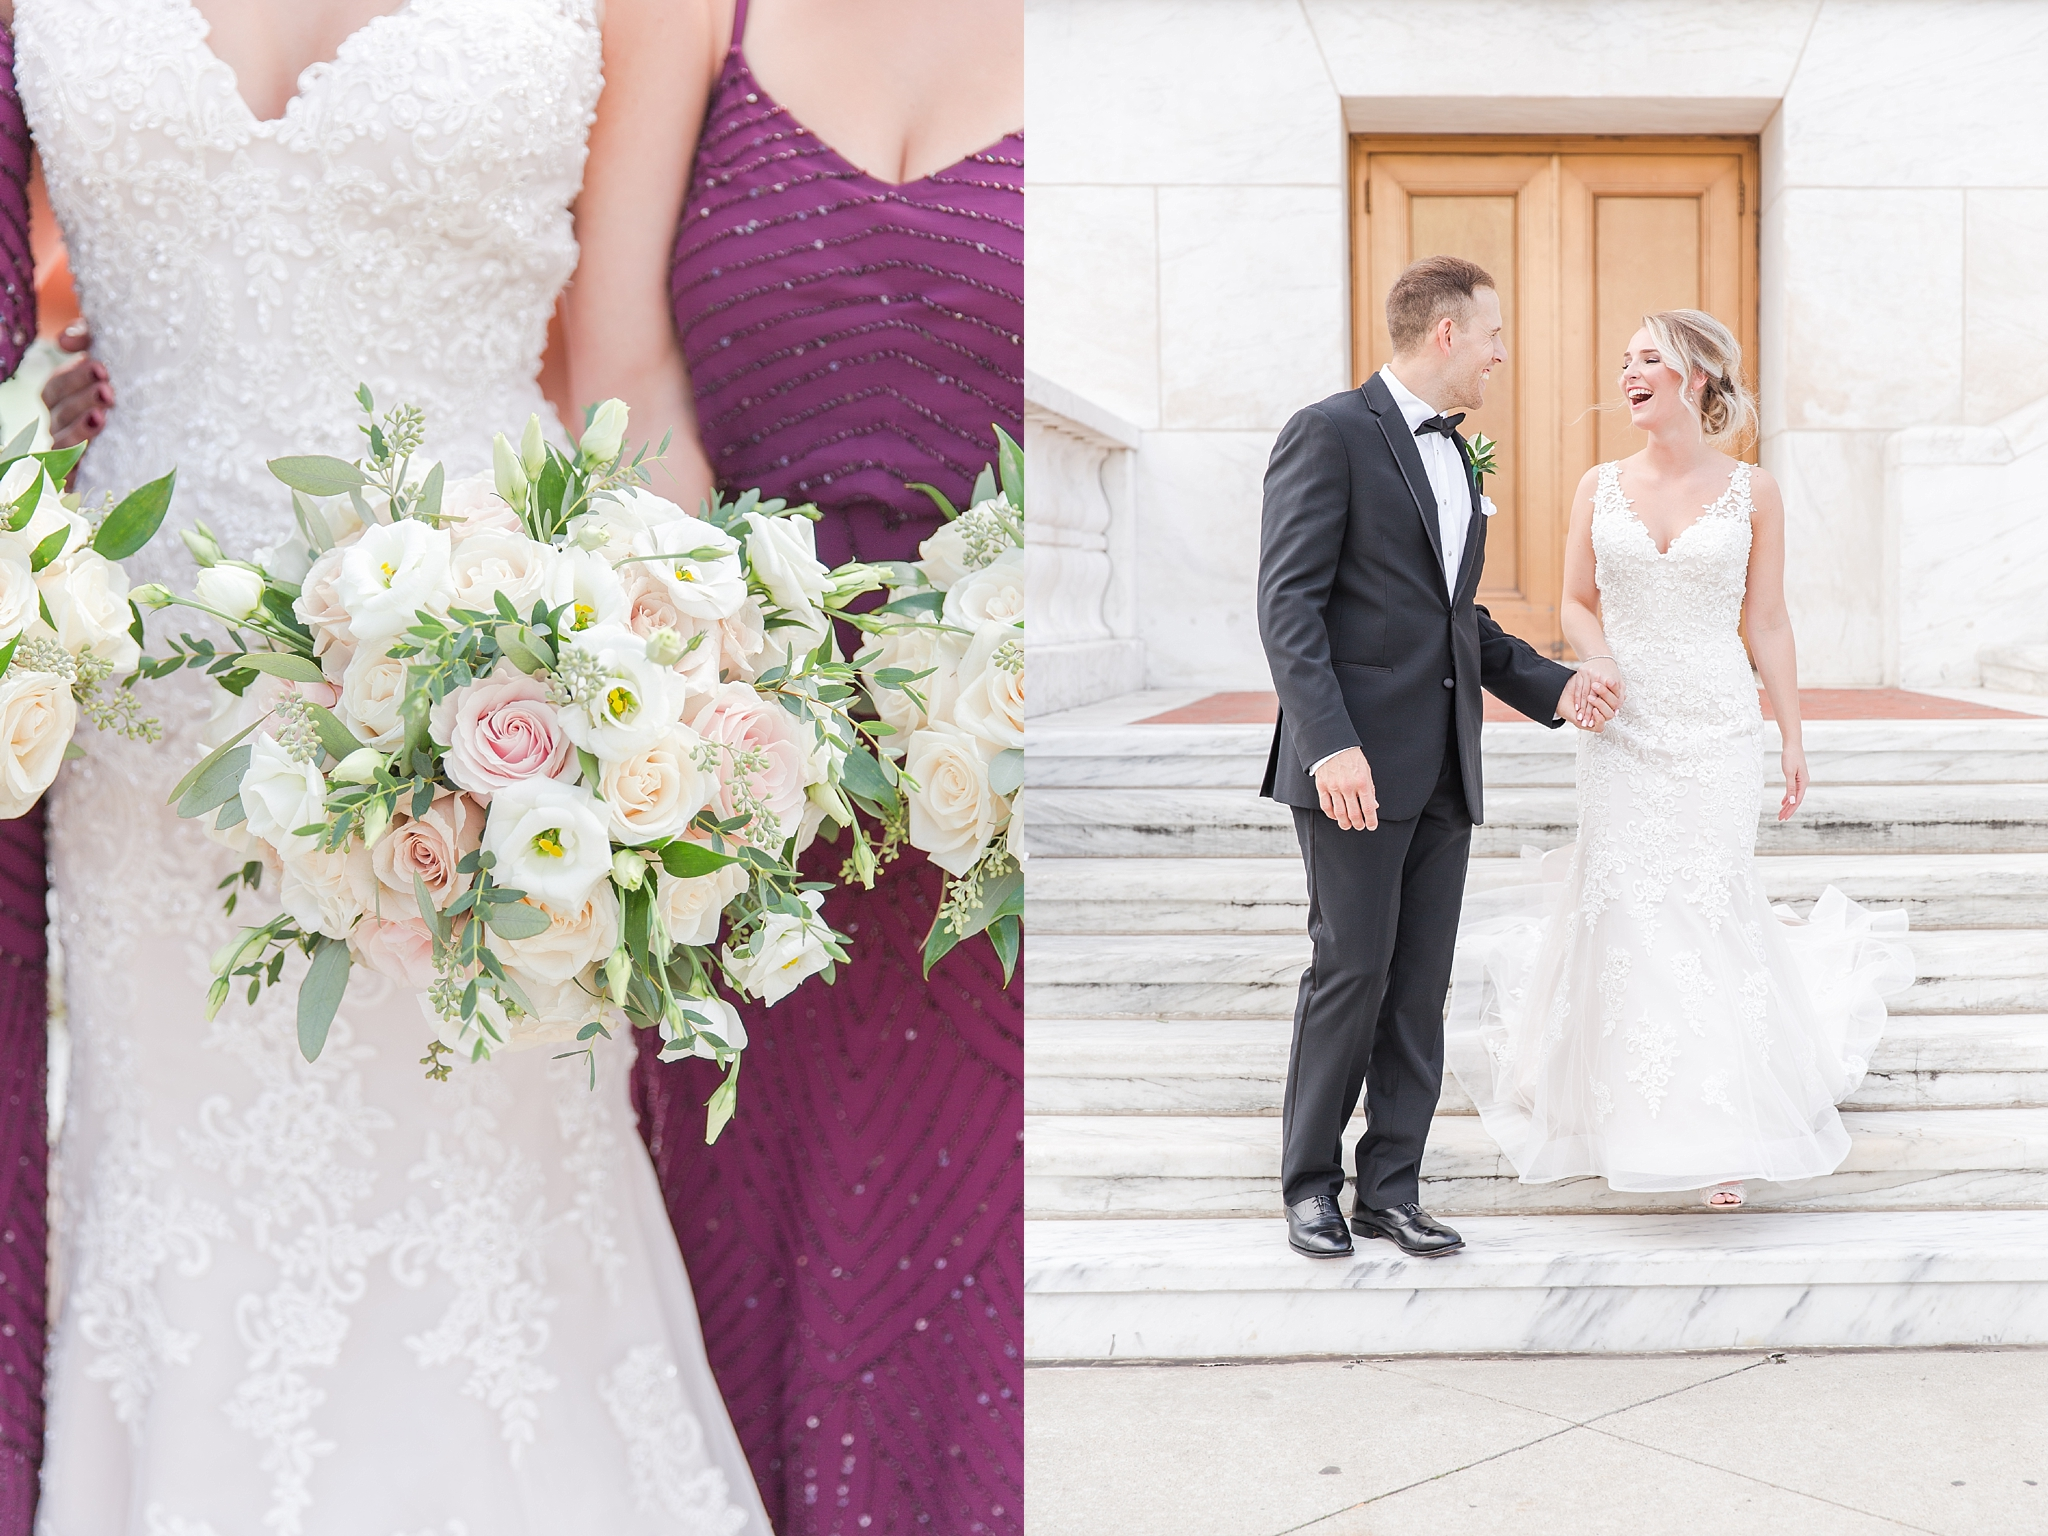 candid-romantic-wedding-photos-at-the-masonic-temple-belle-isle-detroit-institute-of-arts-in-detroit-michigan-by-courtney-carolyn-photography_0034.jpg